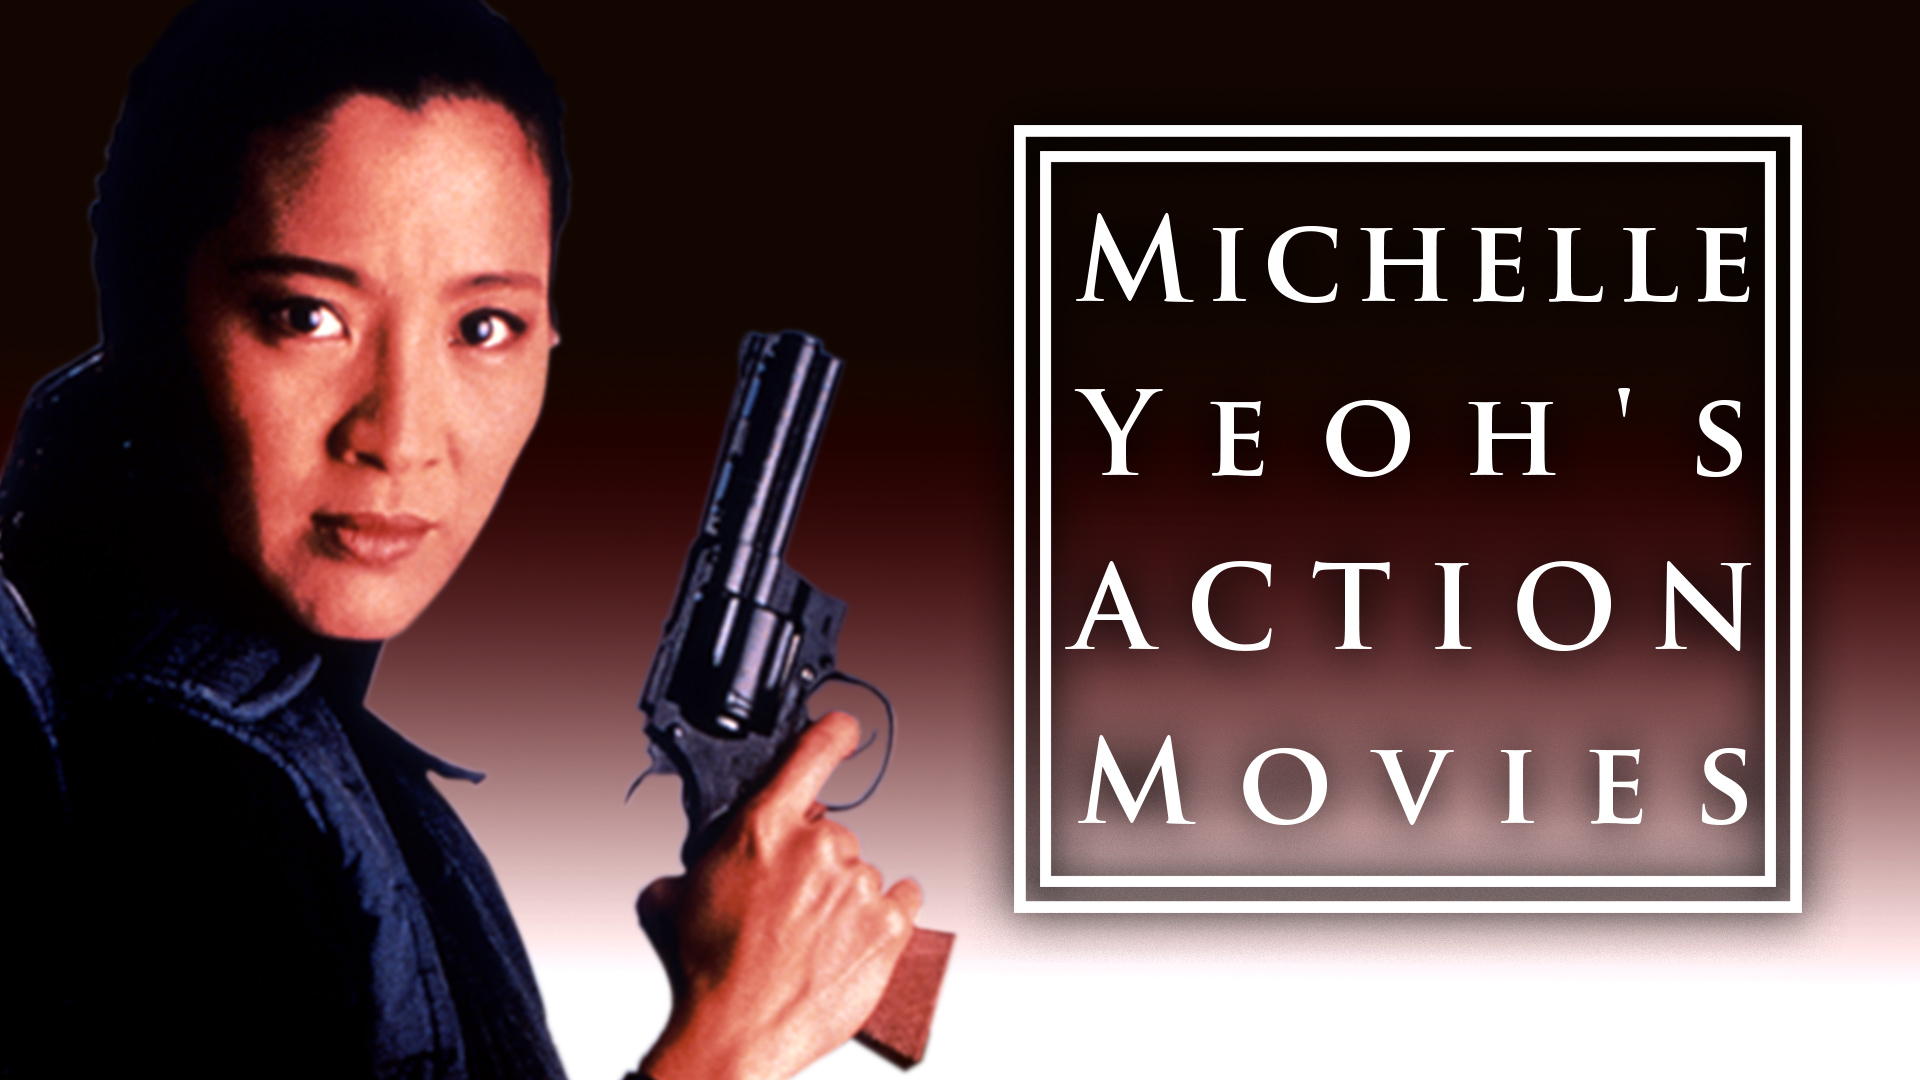 MICHELLE YEOH'S ACTION MOVIES